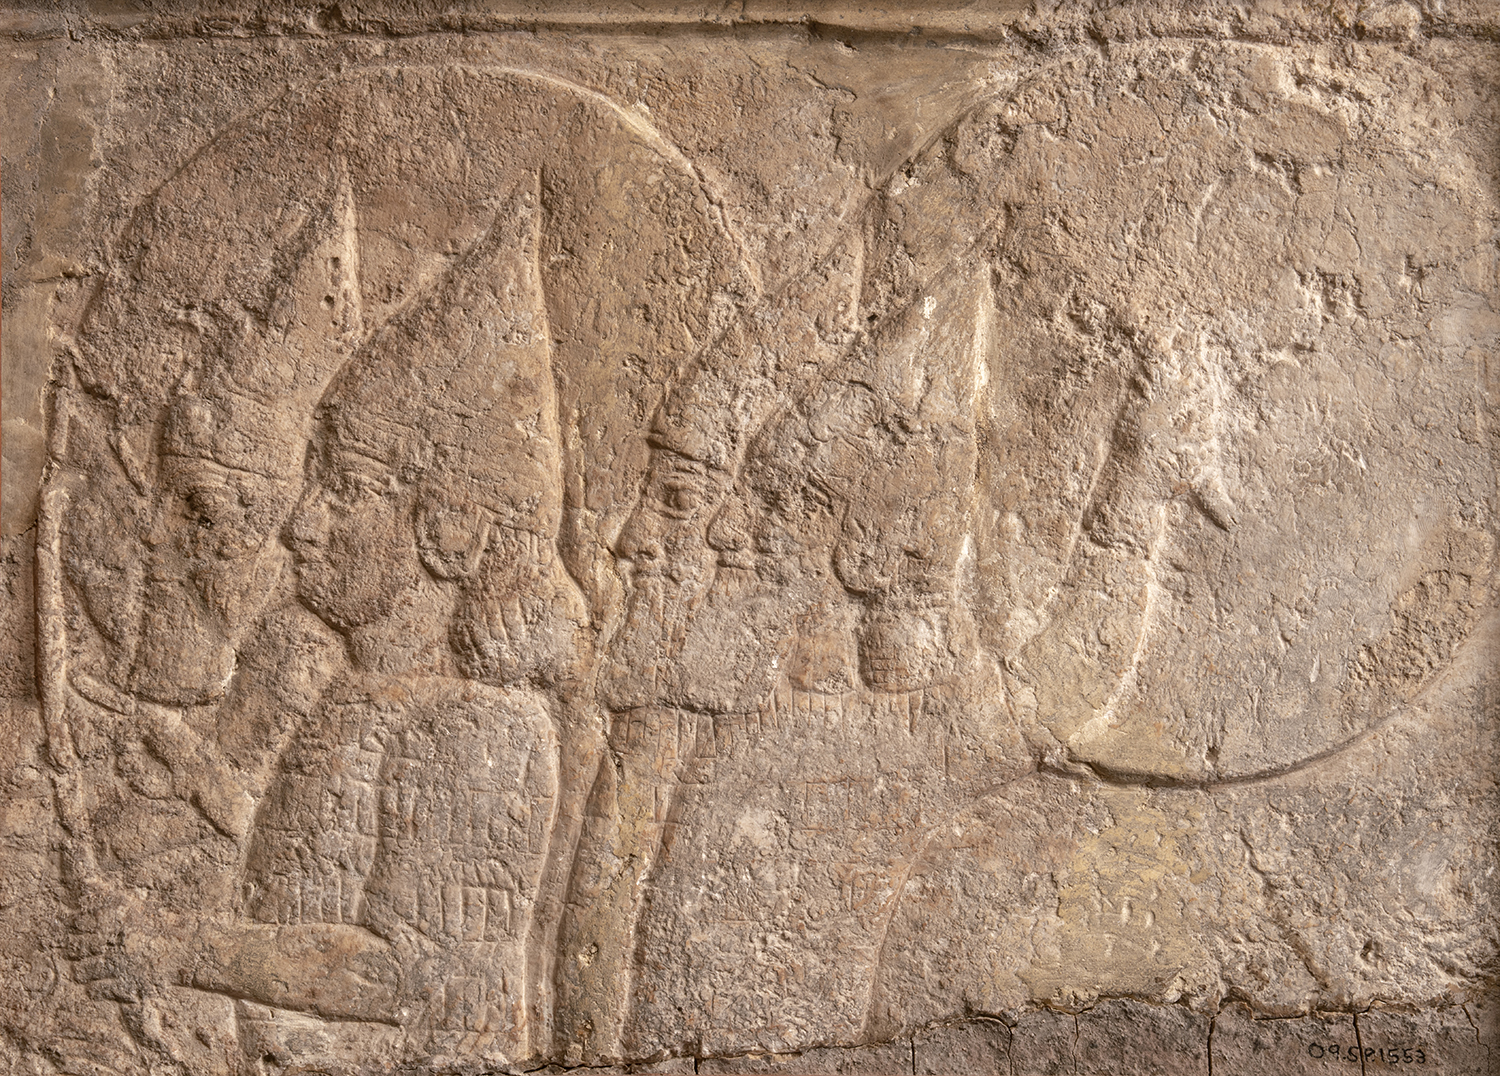 Figure 6: Gypseous limestone relief of soldiers in a chariot, from the North Palace of Ashurbanipal. Neo-Assyrian, seventh century BCE. In Glencairn's Ancient Near East gallery (09.SP.1552).